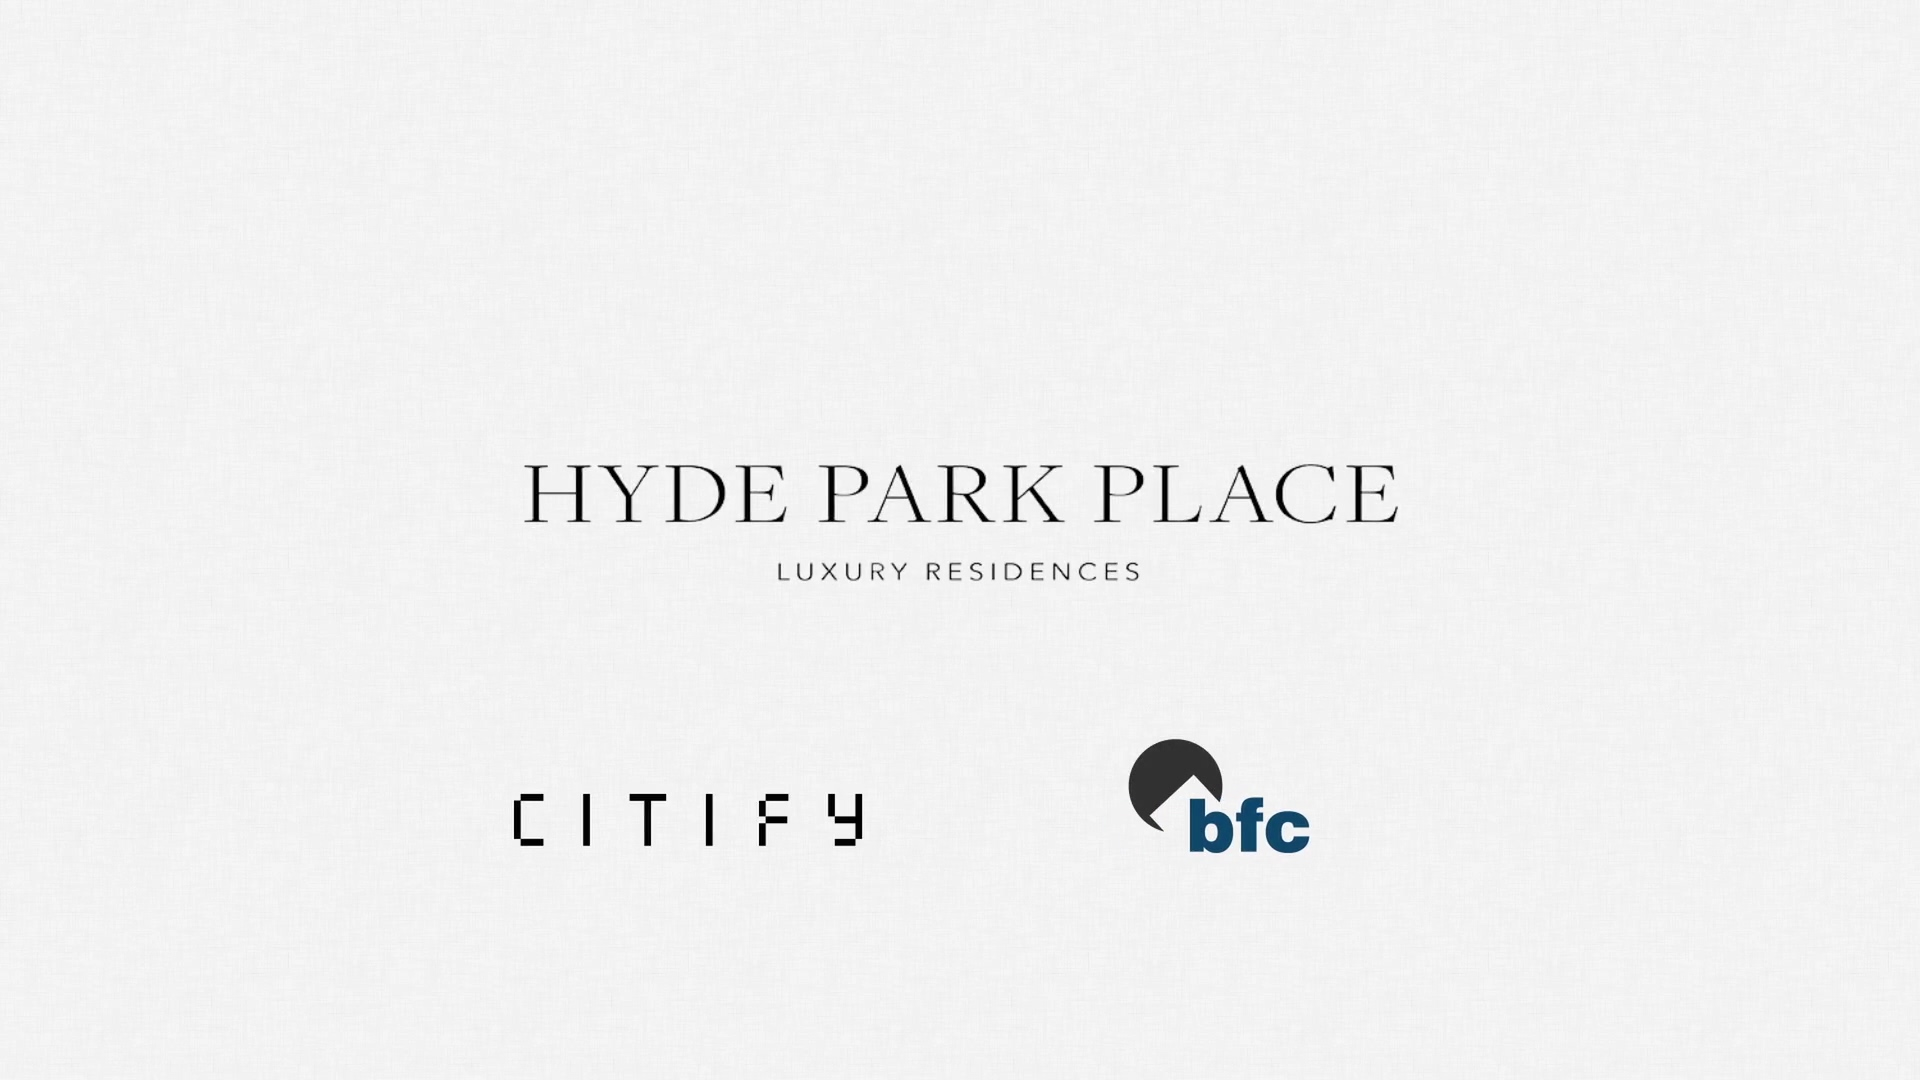 Citify - Hyde Park - February 2020